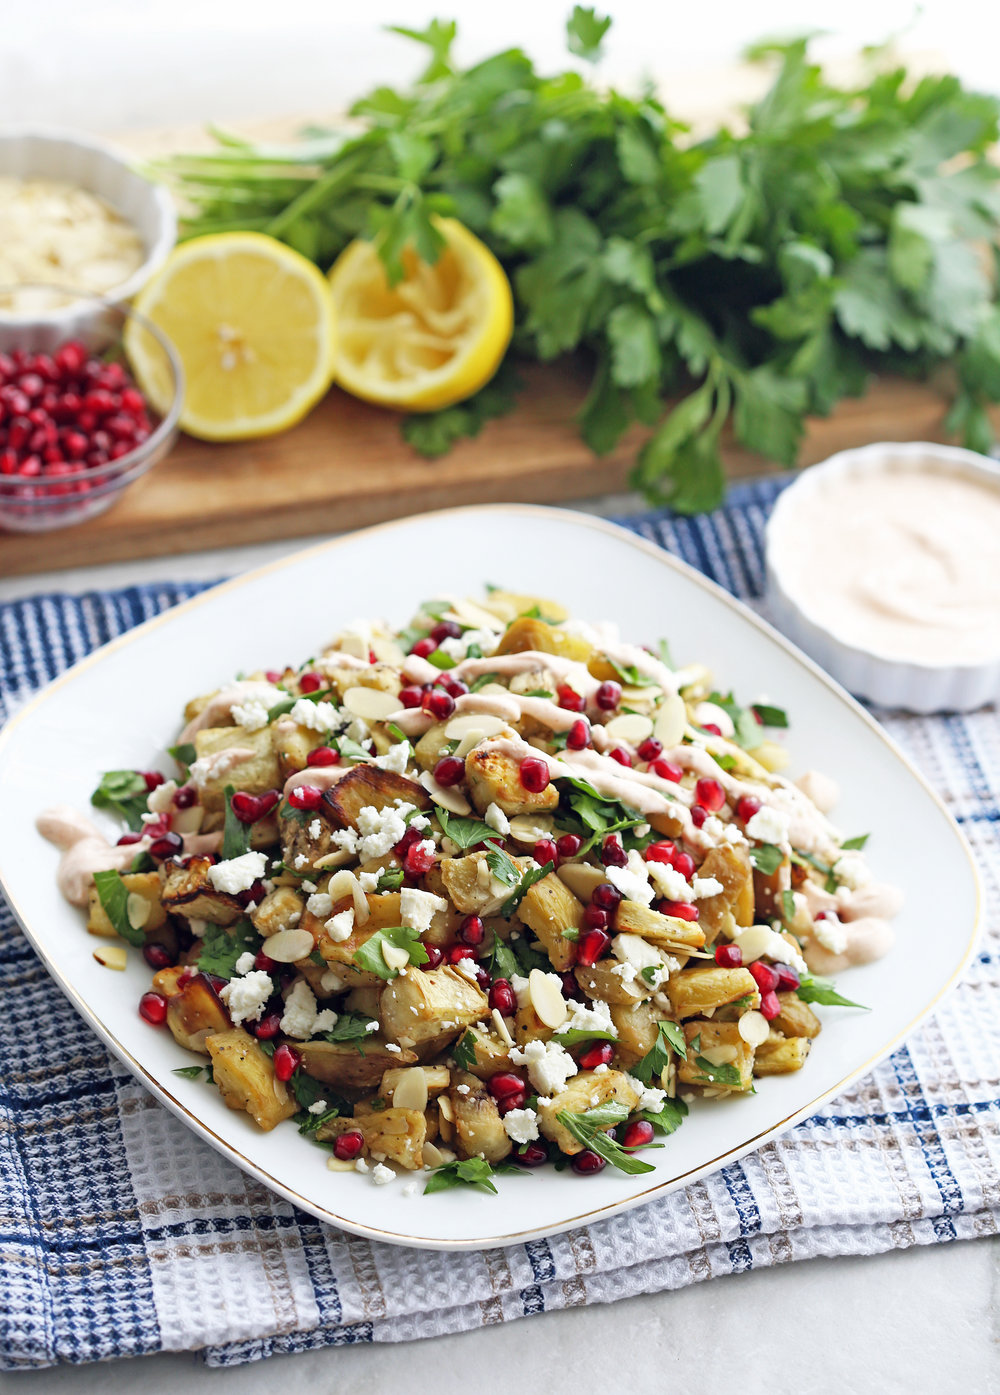 A white plate full of roasted eggplant pomegranate feta salad with smoked paprika yogurt dressing drizzled on top.